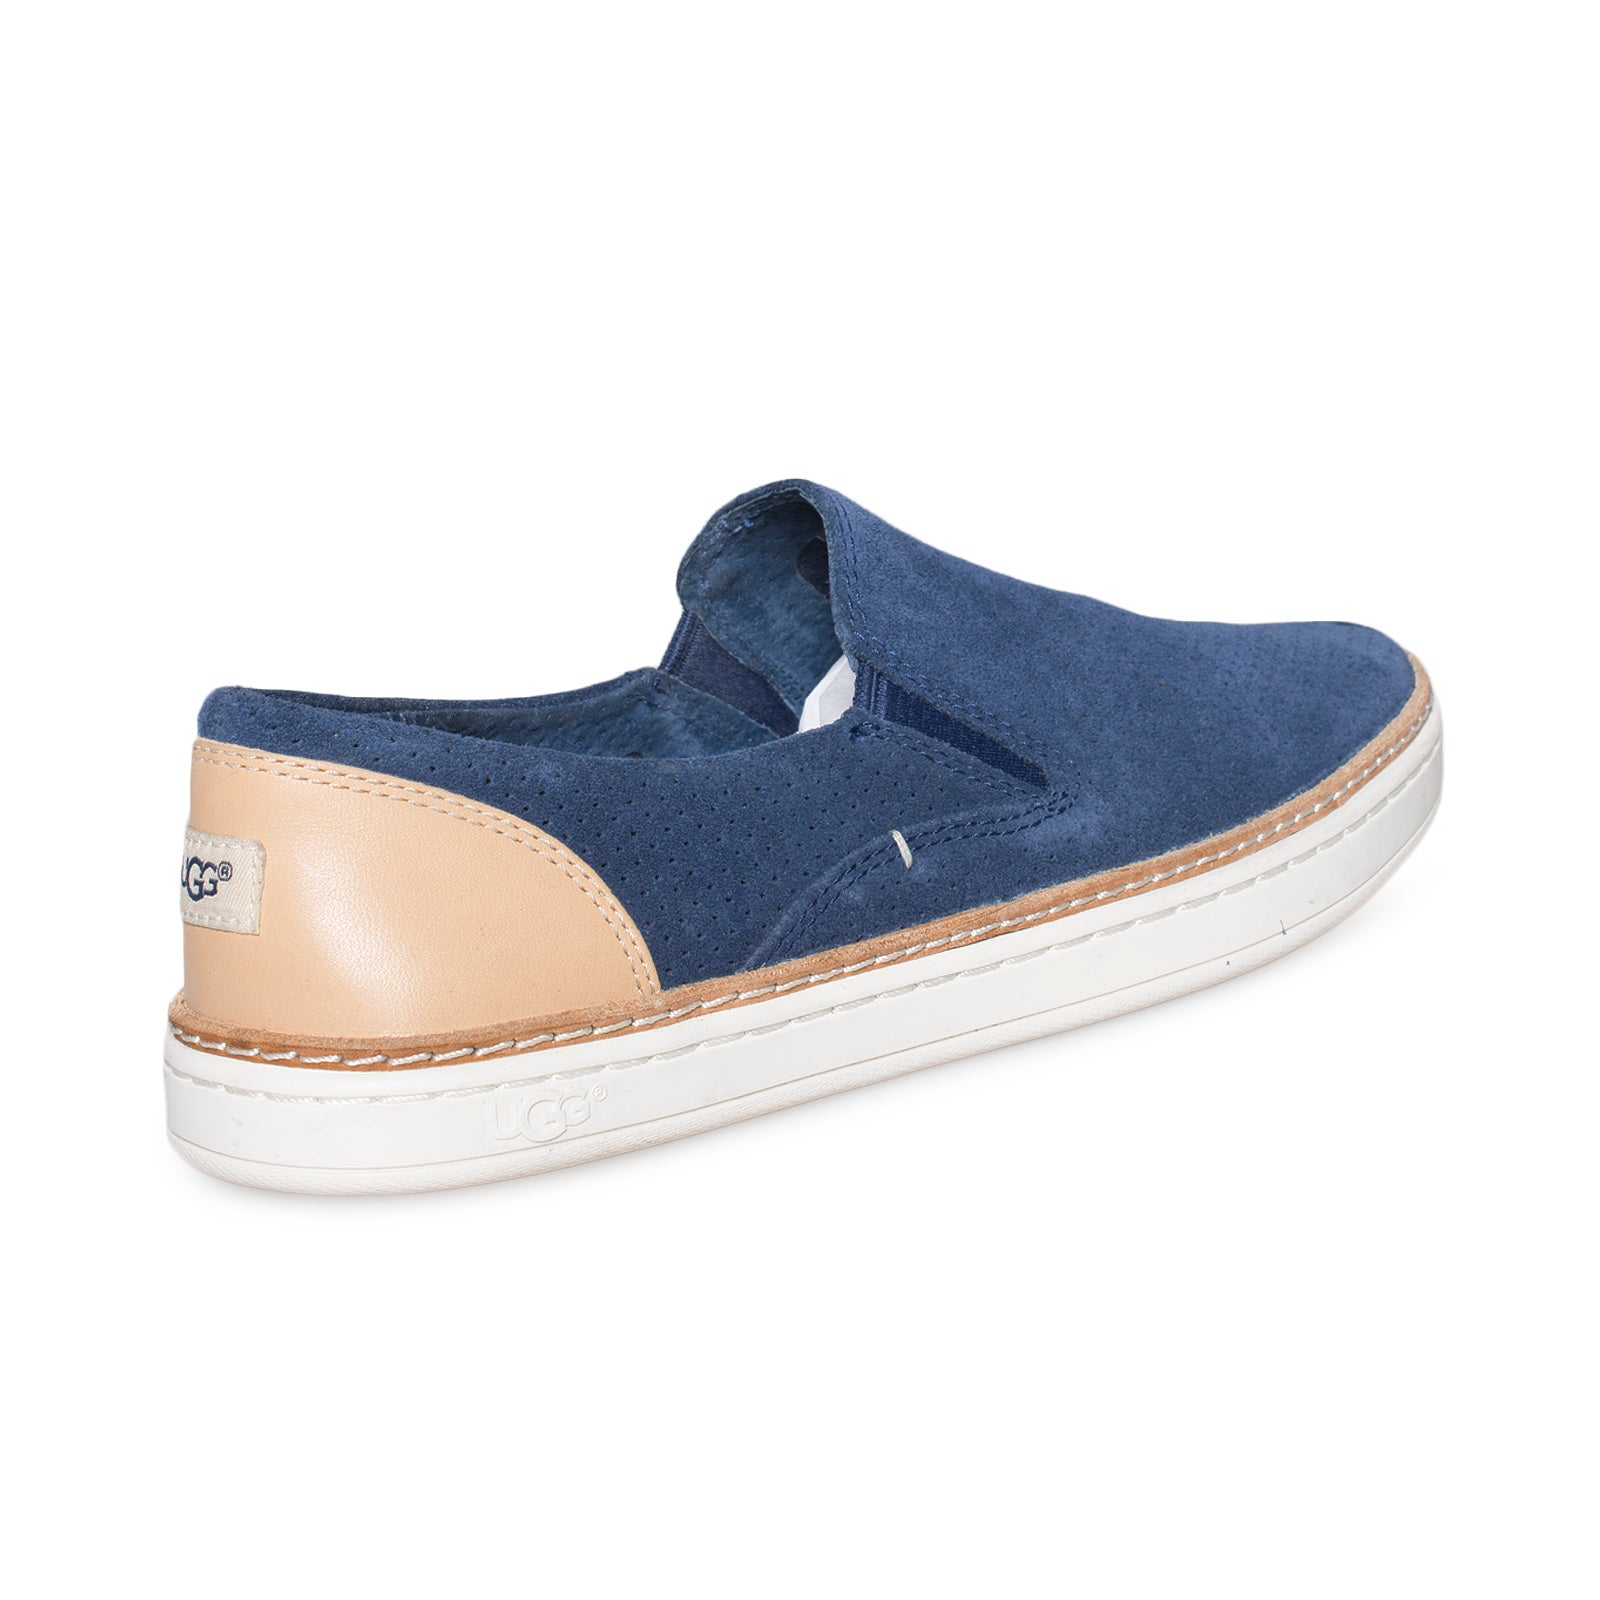 8a6f678f665 UGG Adley Perf Navy Shoes